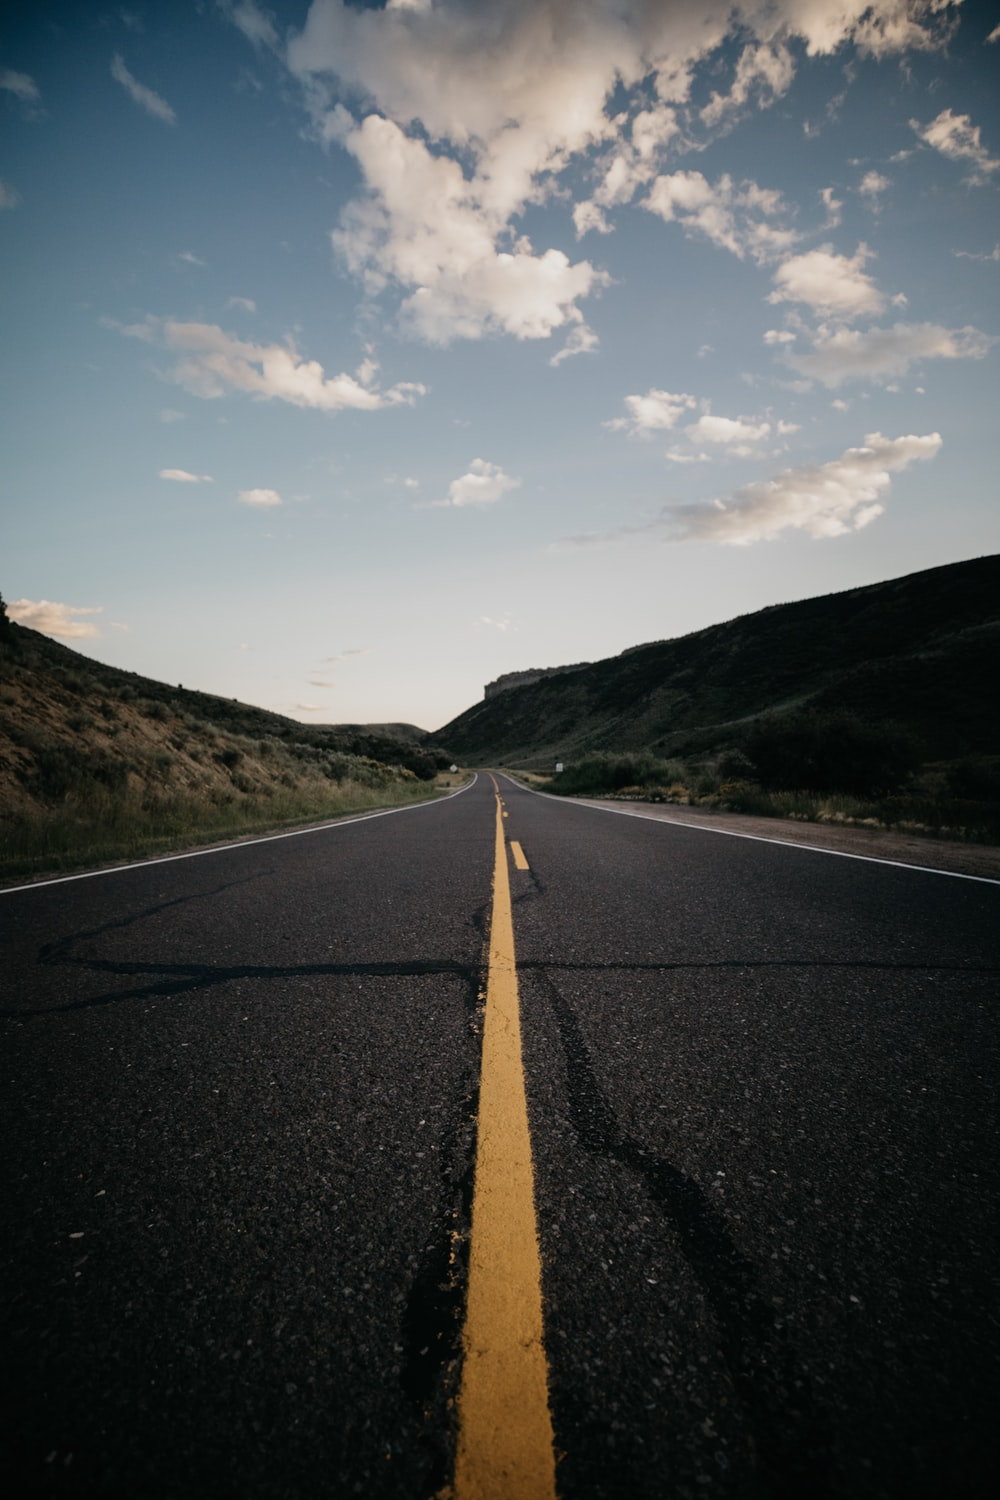 gray concrete road with no vehicle under blue and white skies